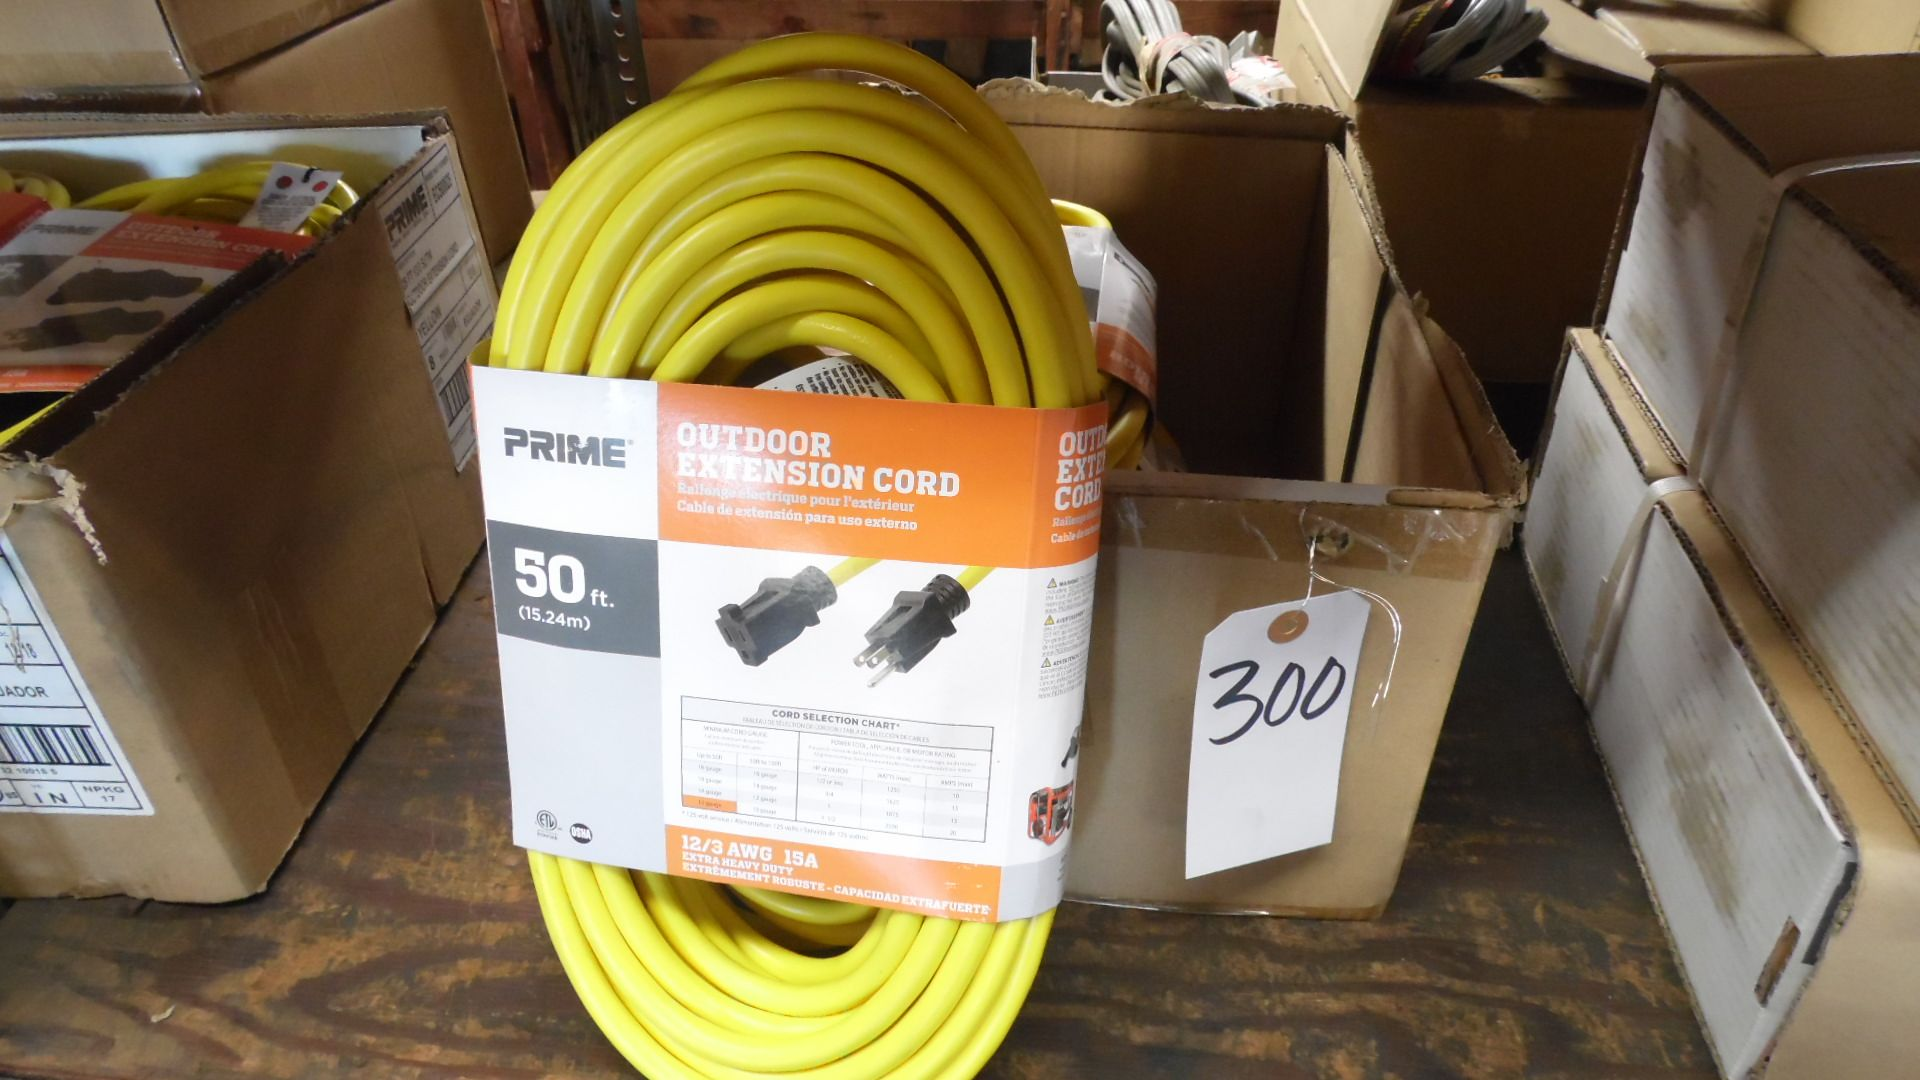 Lot 300 - CASE OF 50 FT. EXTENSION